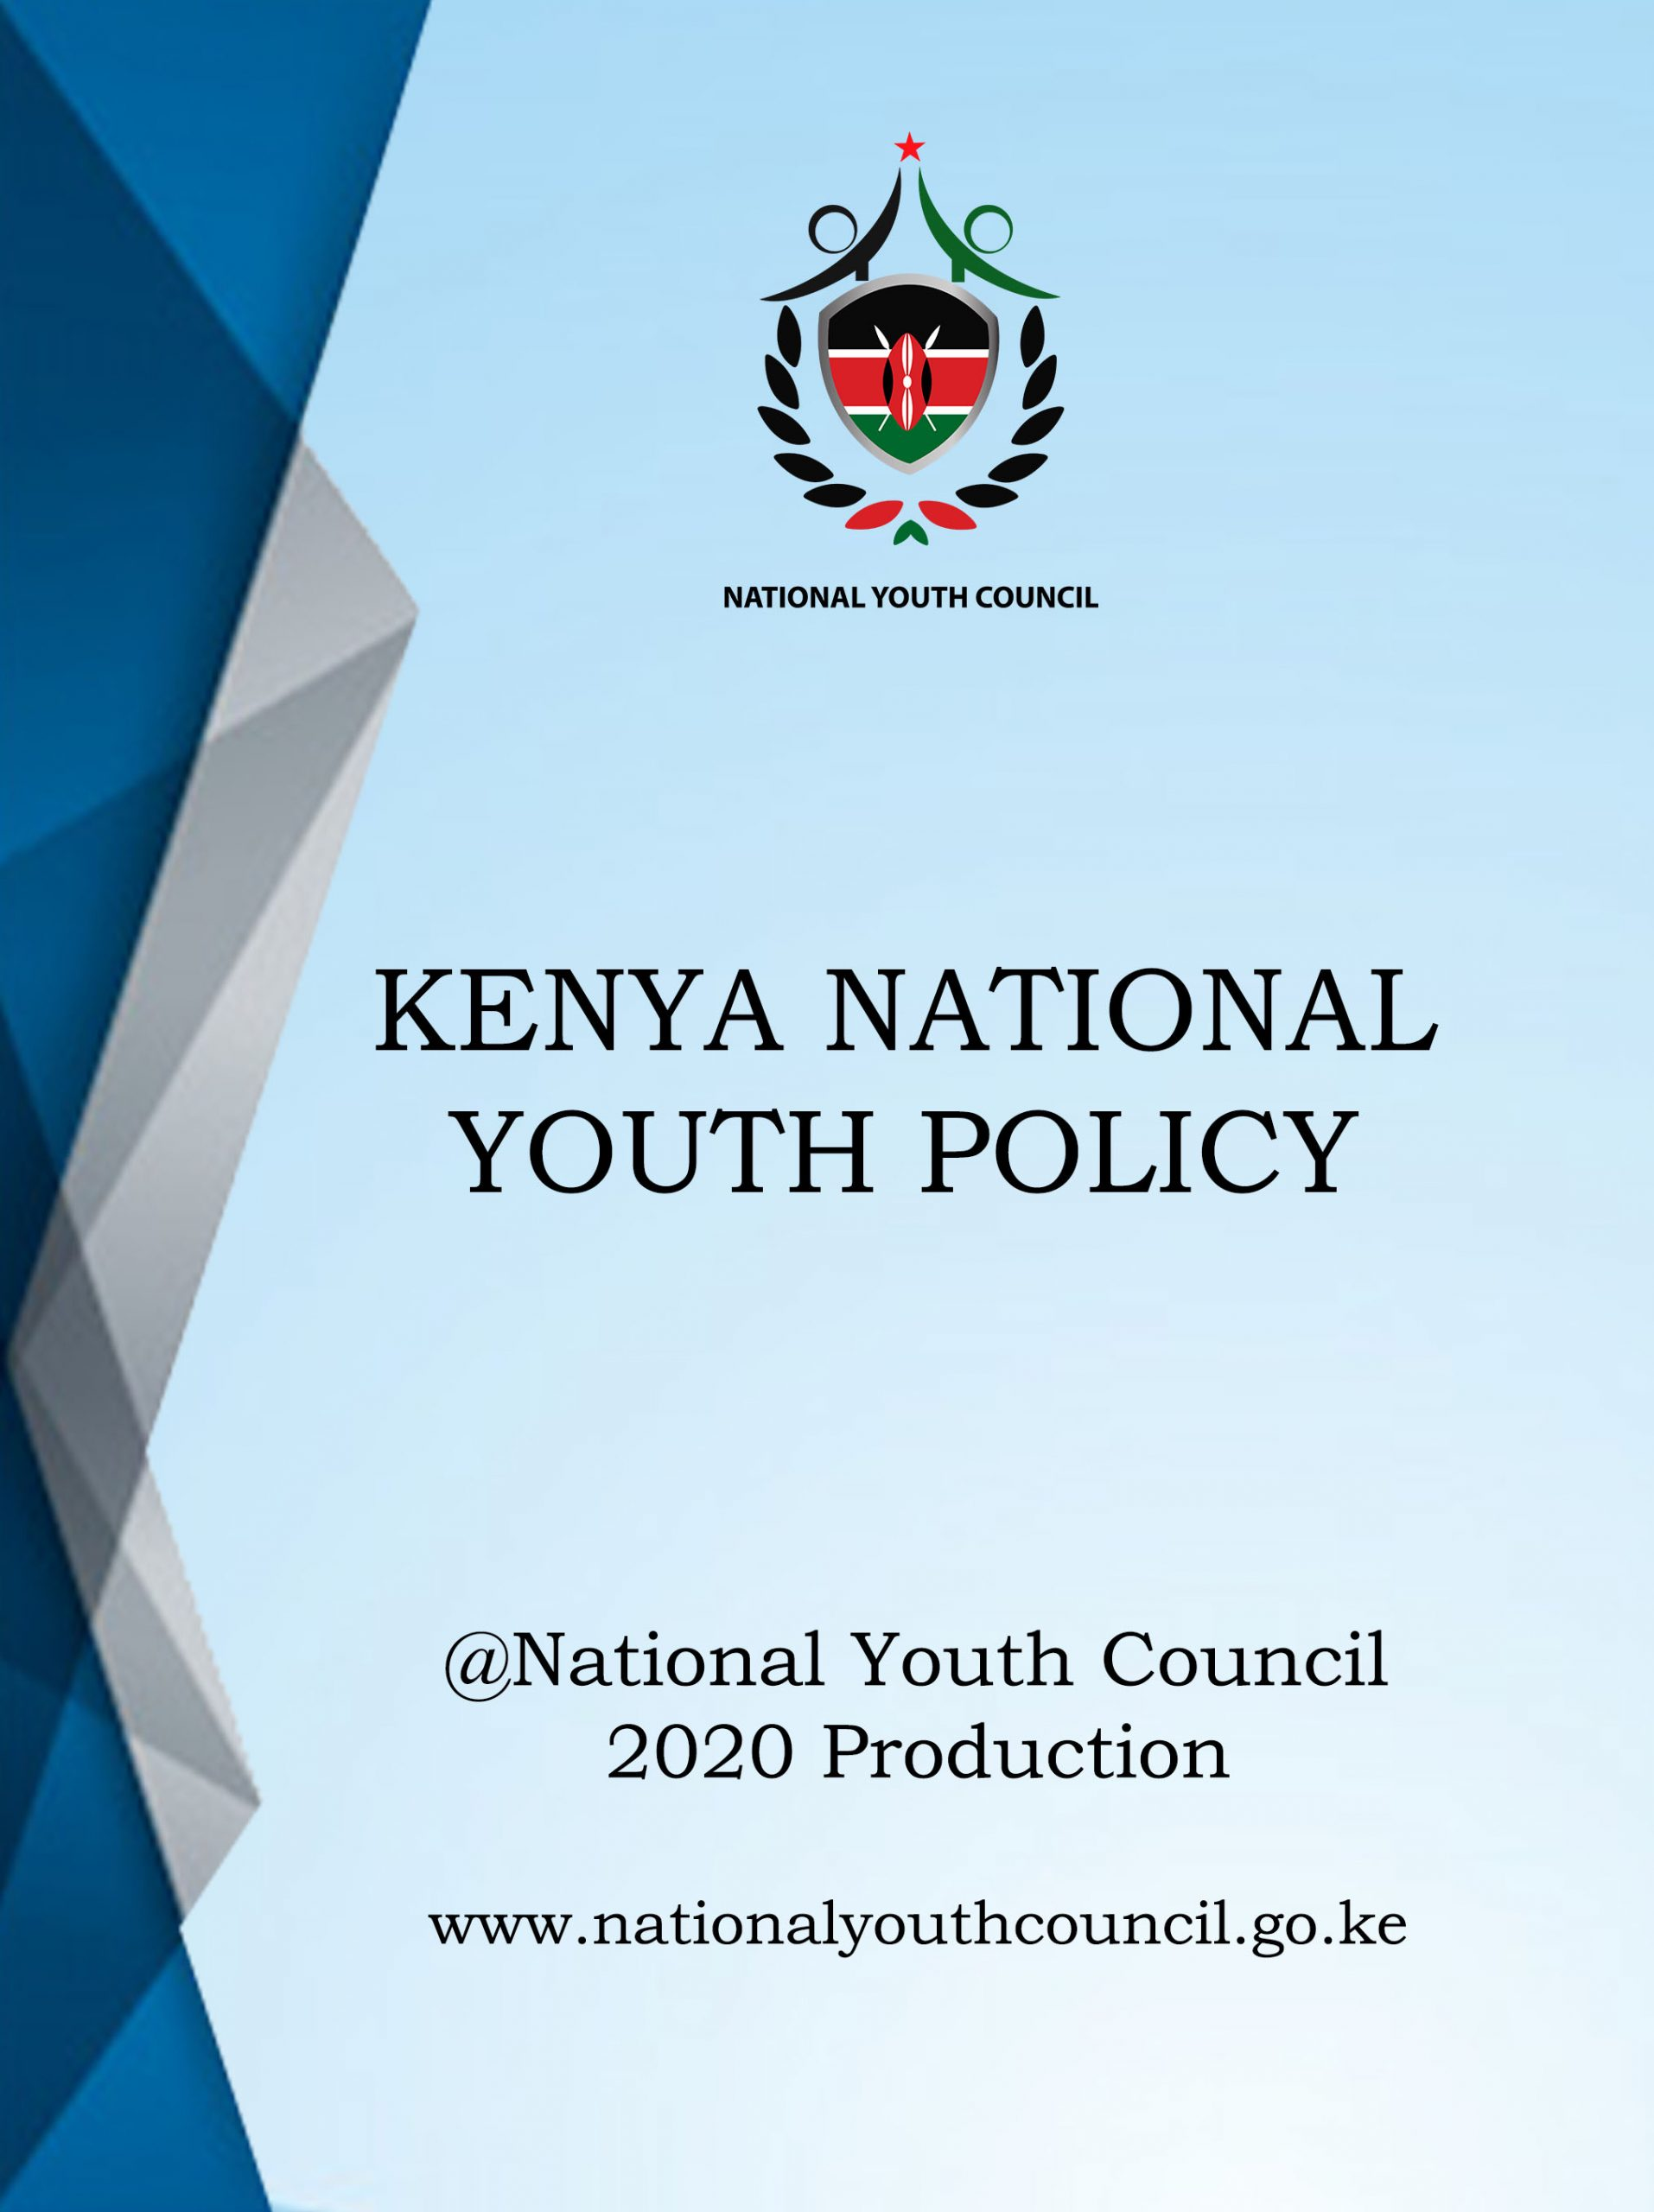 KENYA NATIONAL YOUTH POLICY